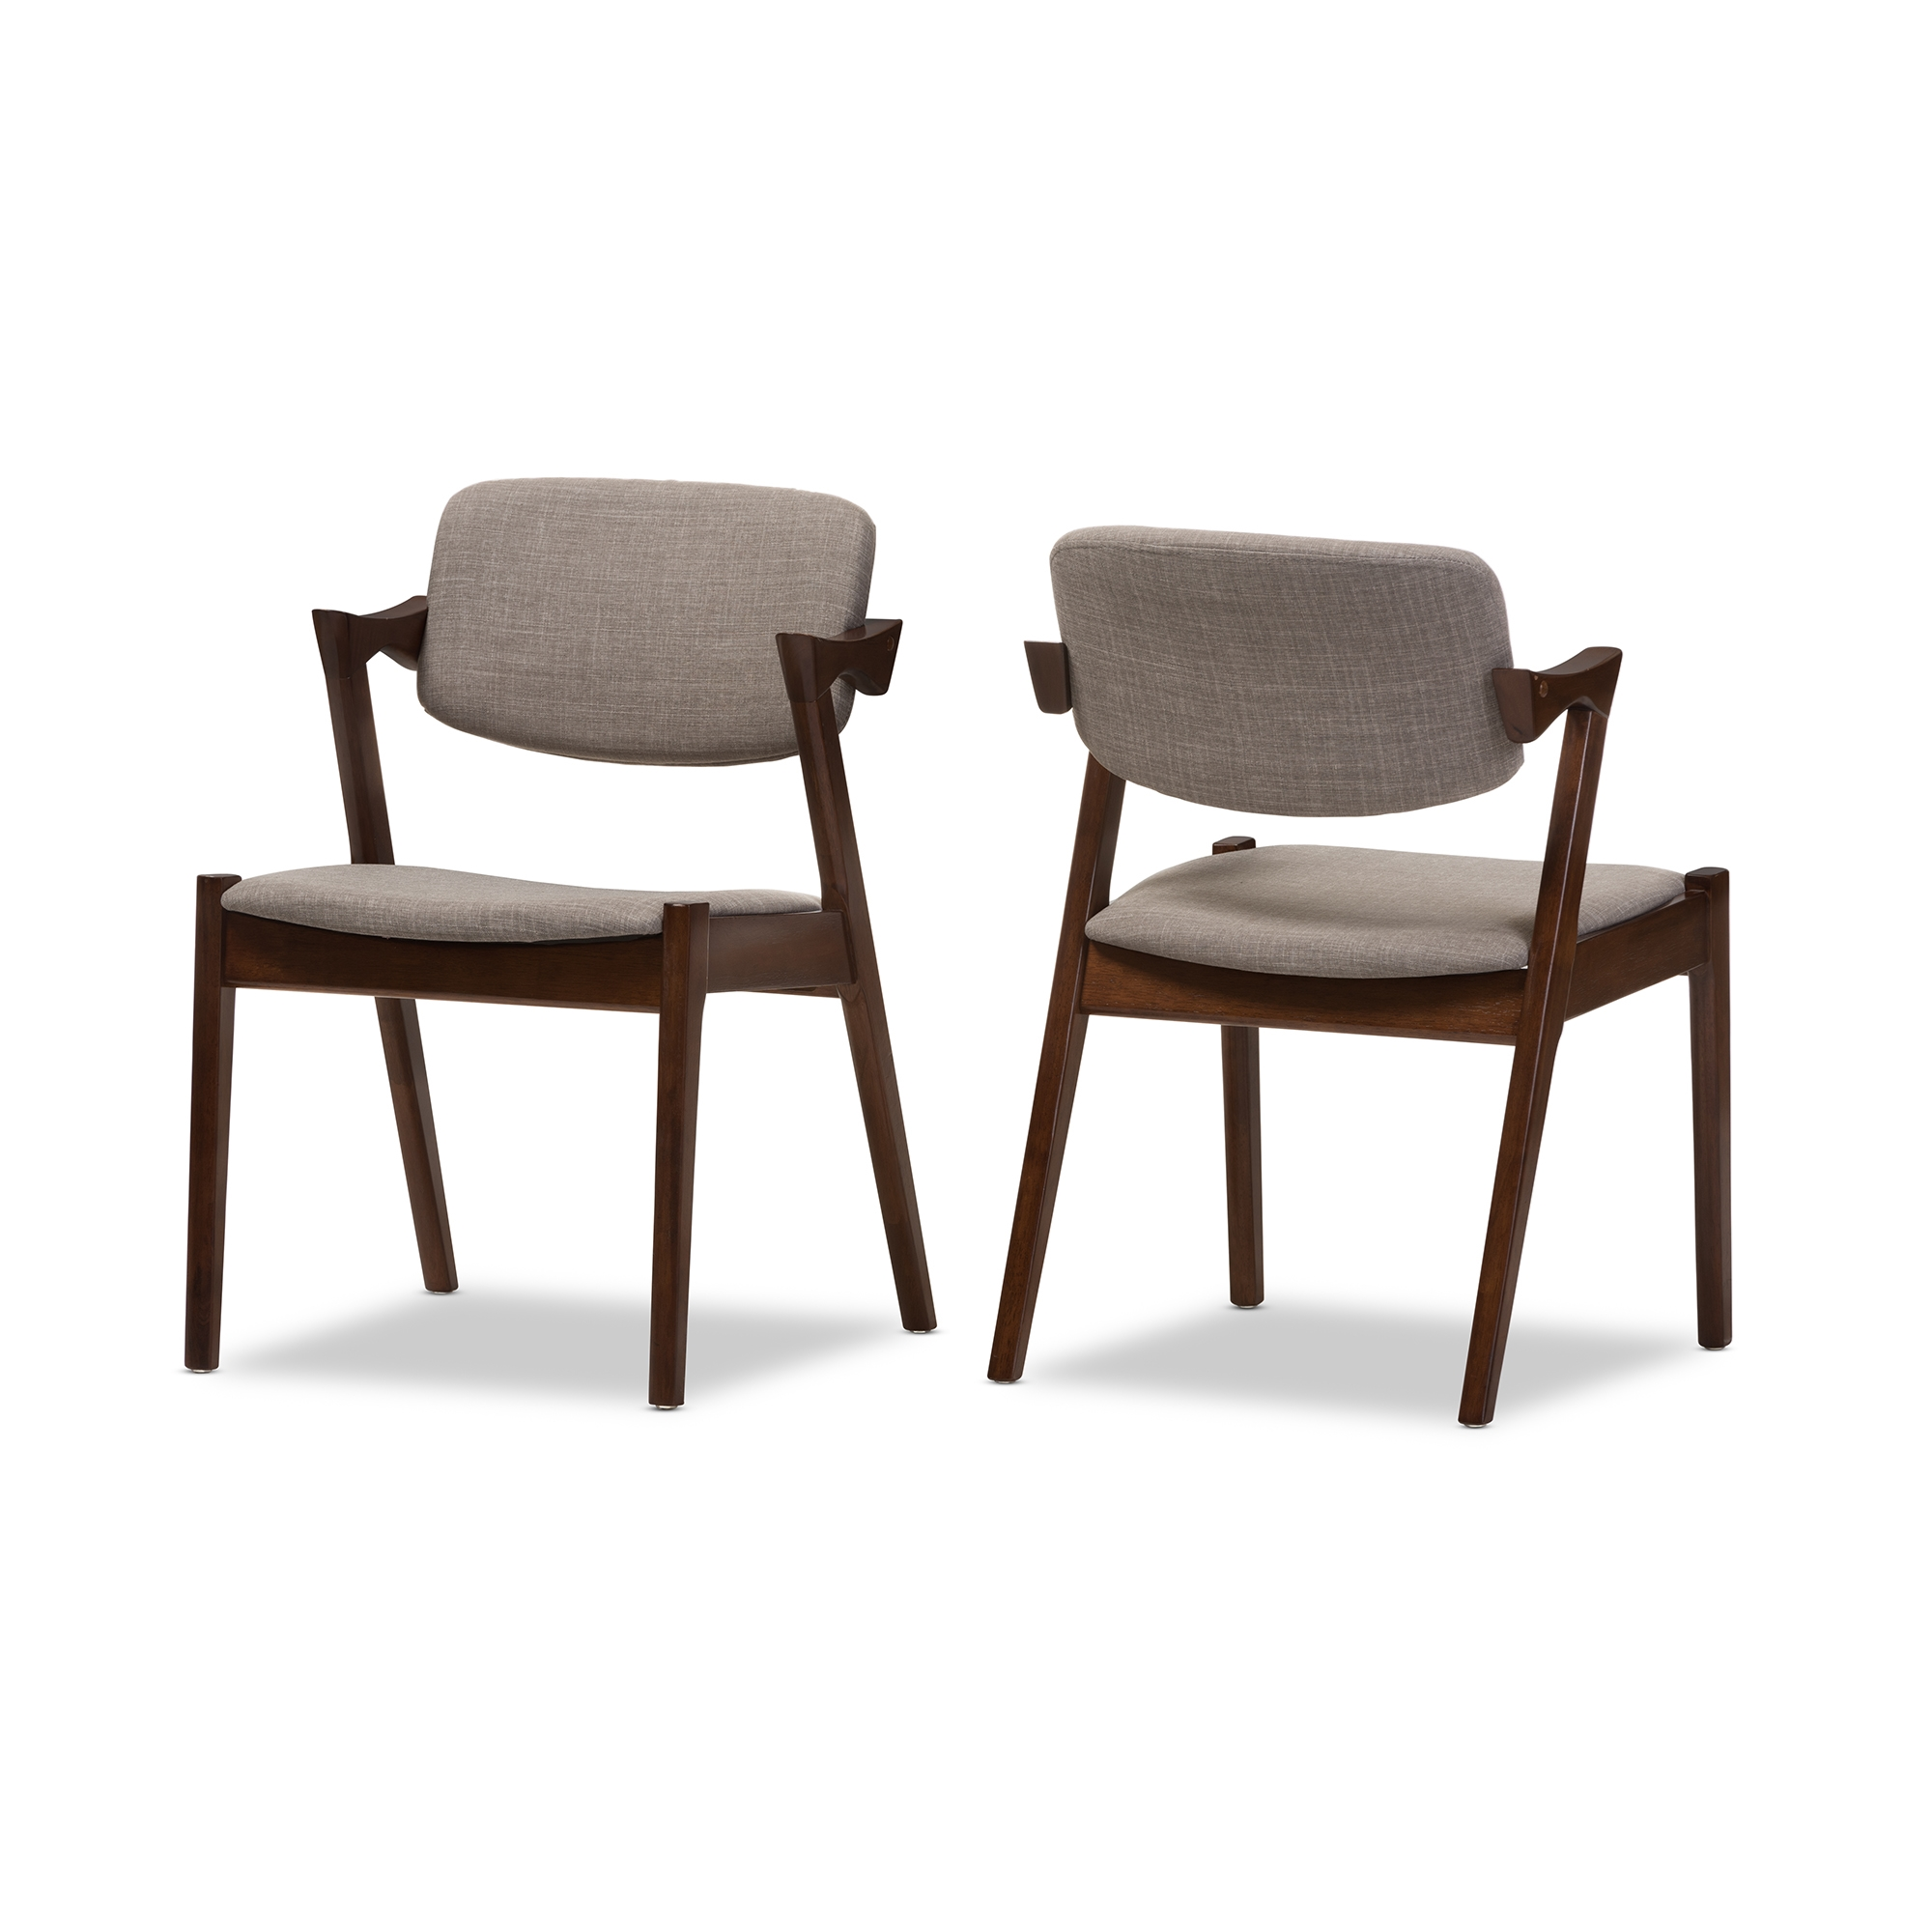 grey wood dining chairs. Wholesale Dining Chair | Room Furniture Grey Wood Chairs L